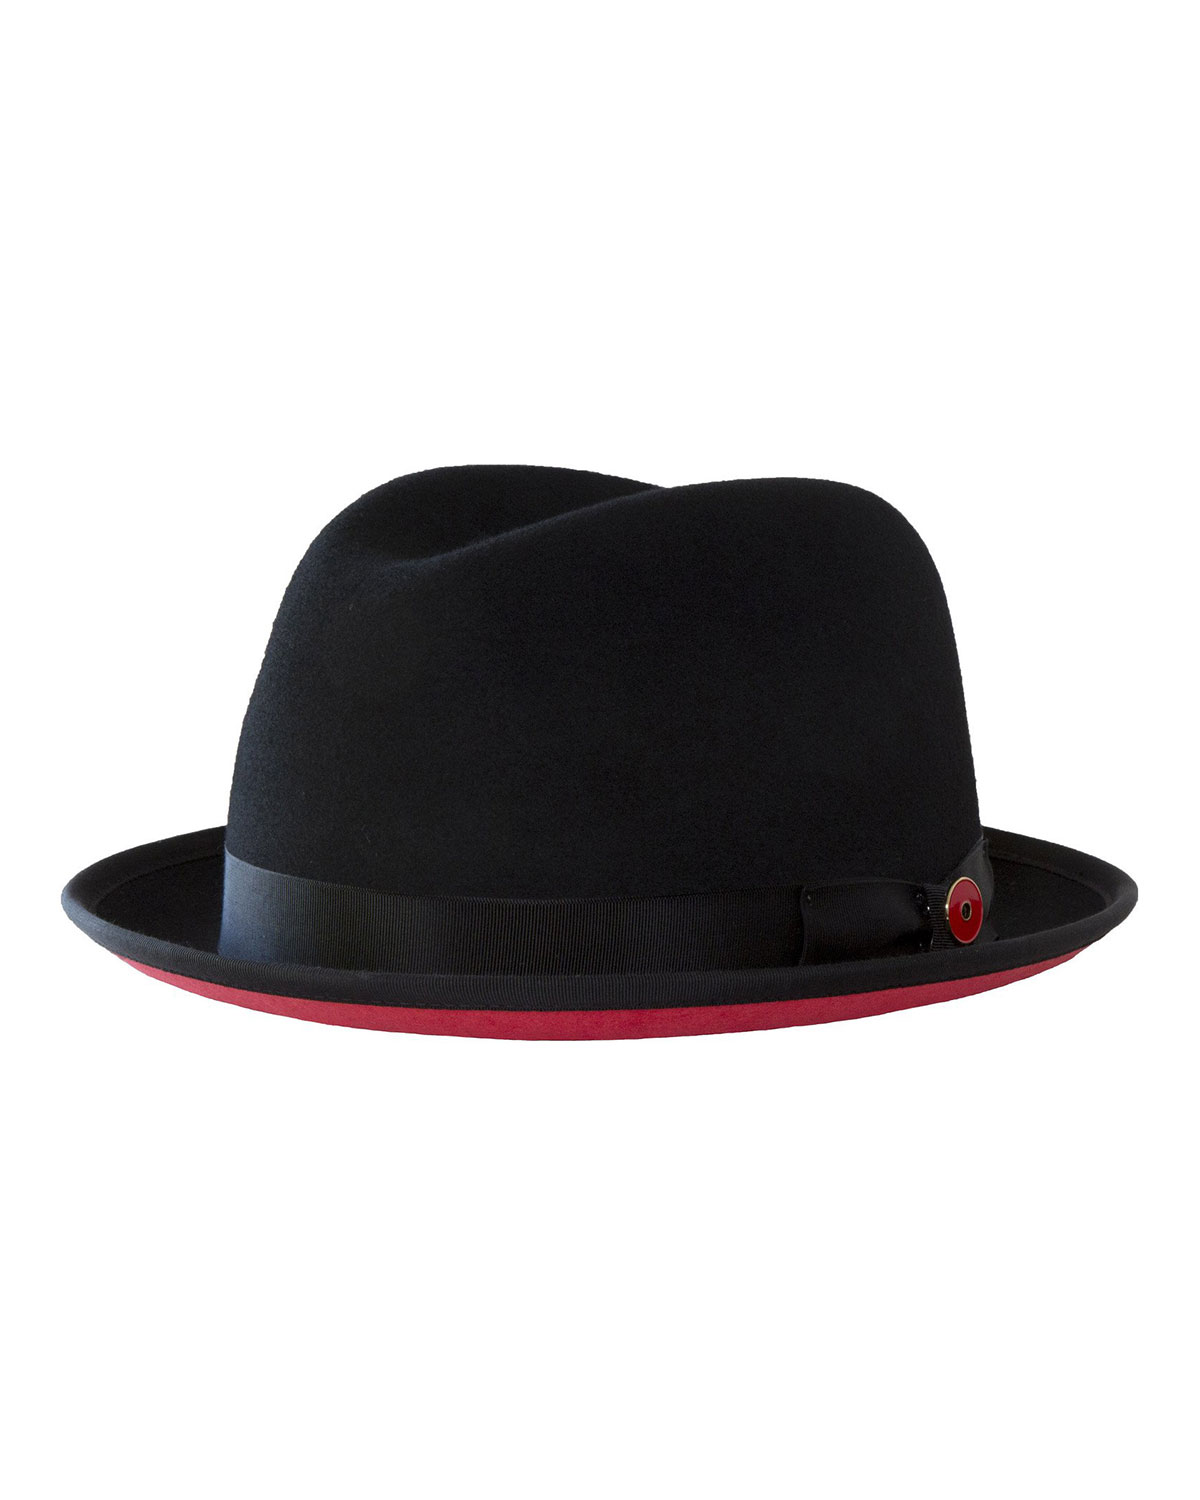 4c965d190b876 Keith and James Men s Prince Red-Brim Wool Fedora Hat